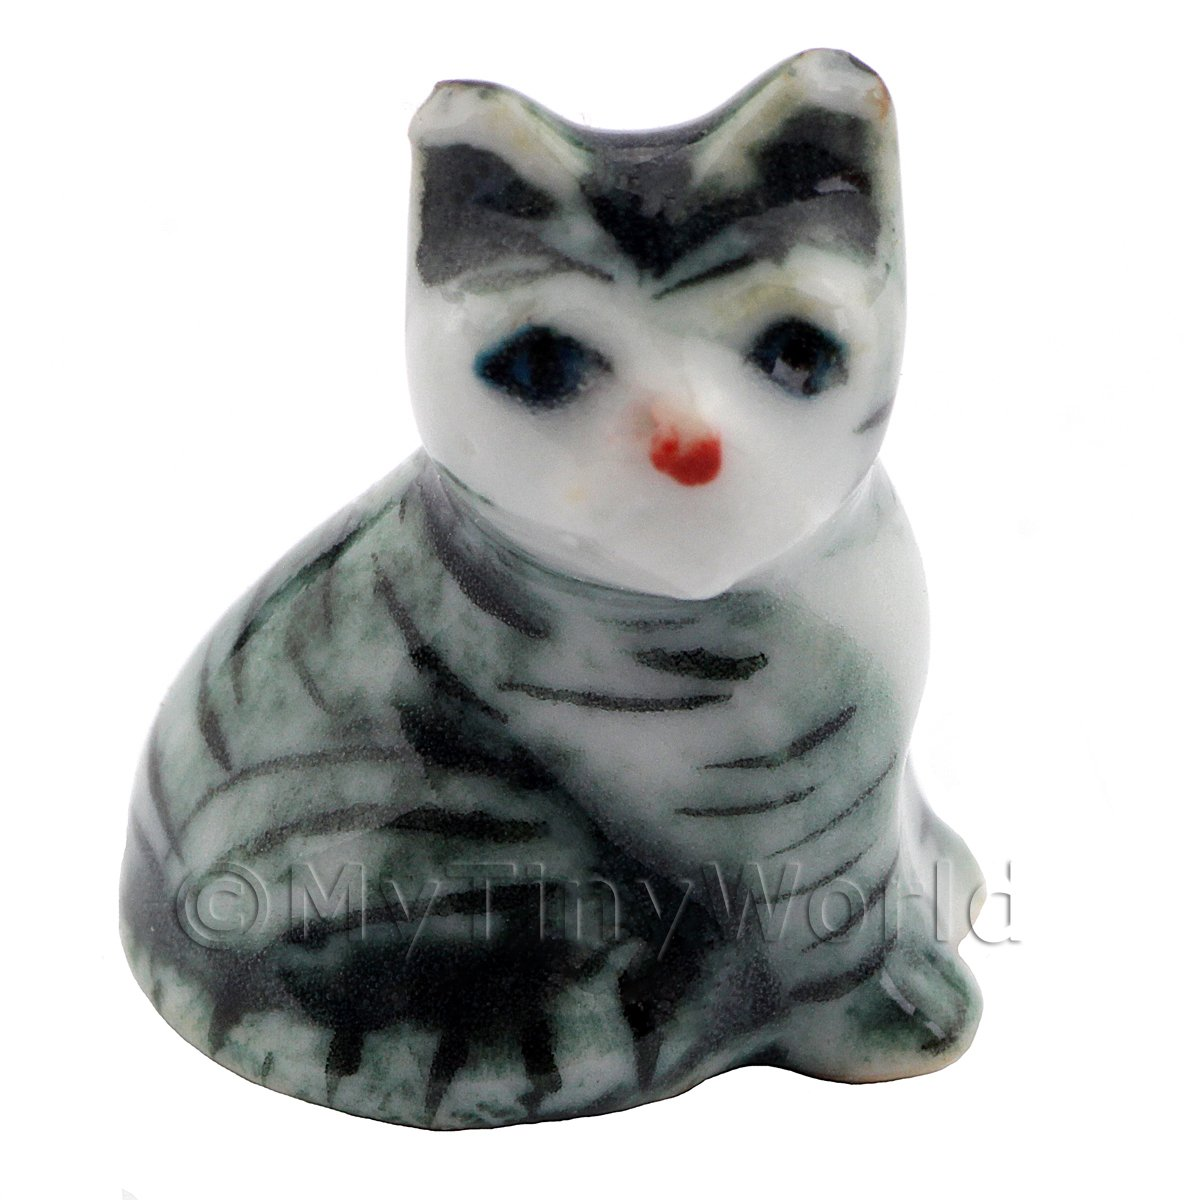 Dolls House Miniature Ceramic Grey and White Tabby Cat Sitting Down